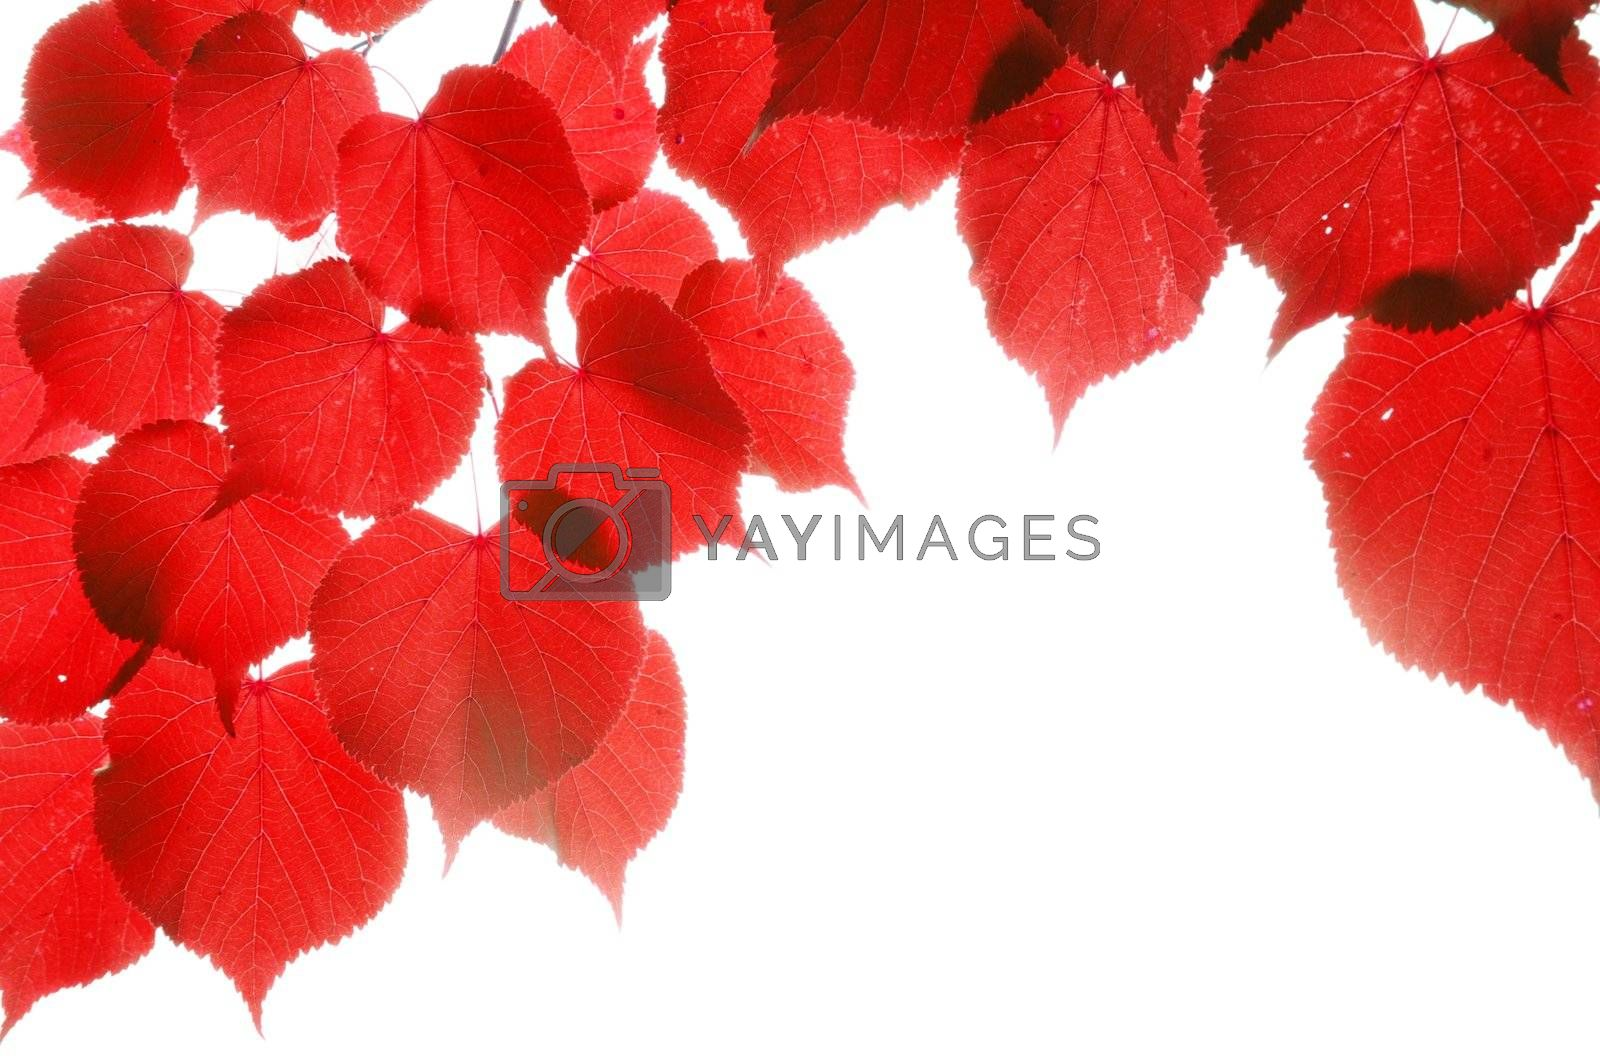 Royalty free image of red fall leaves by gunnar3000